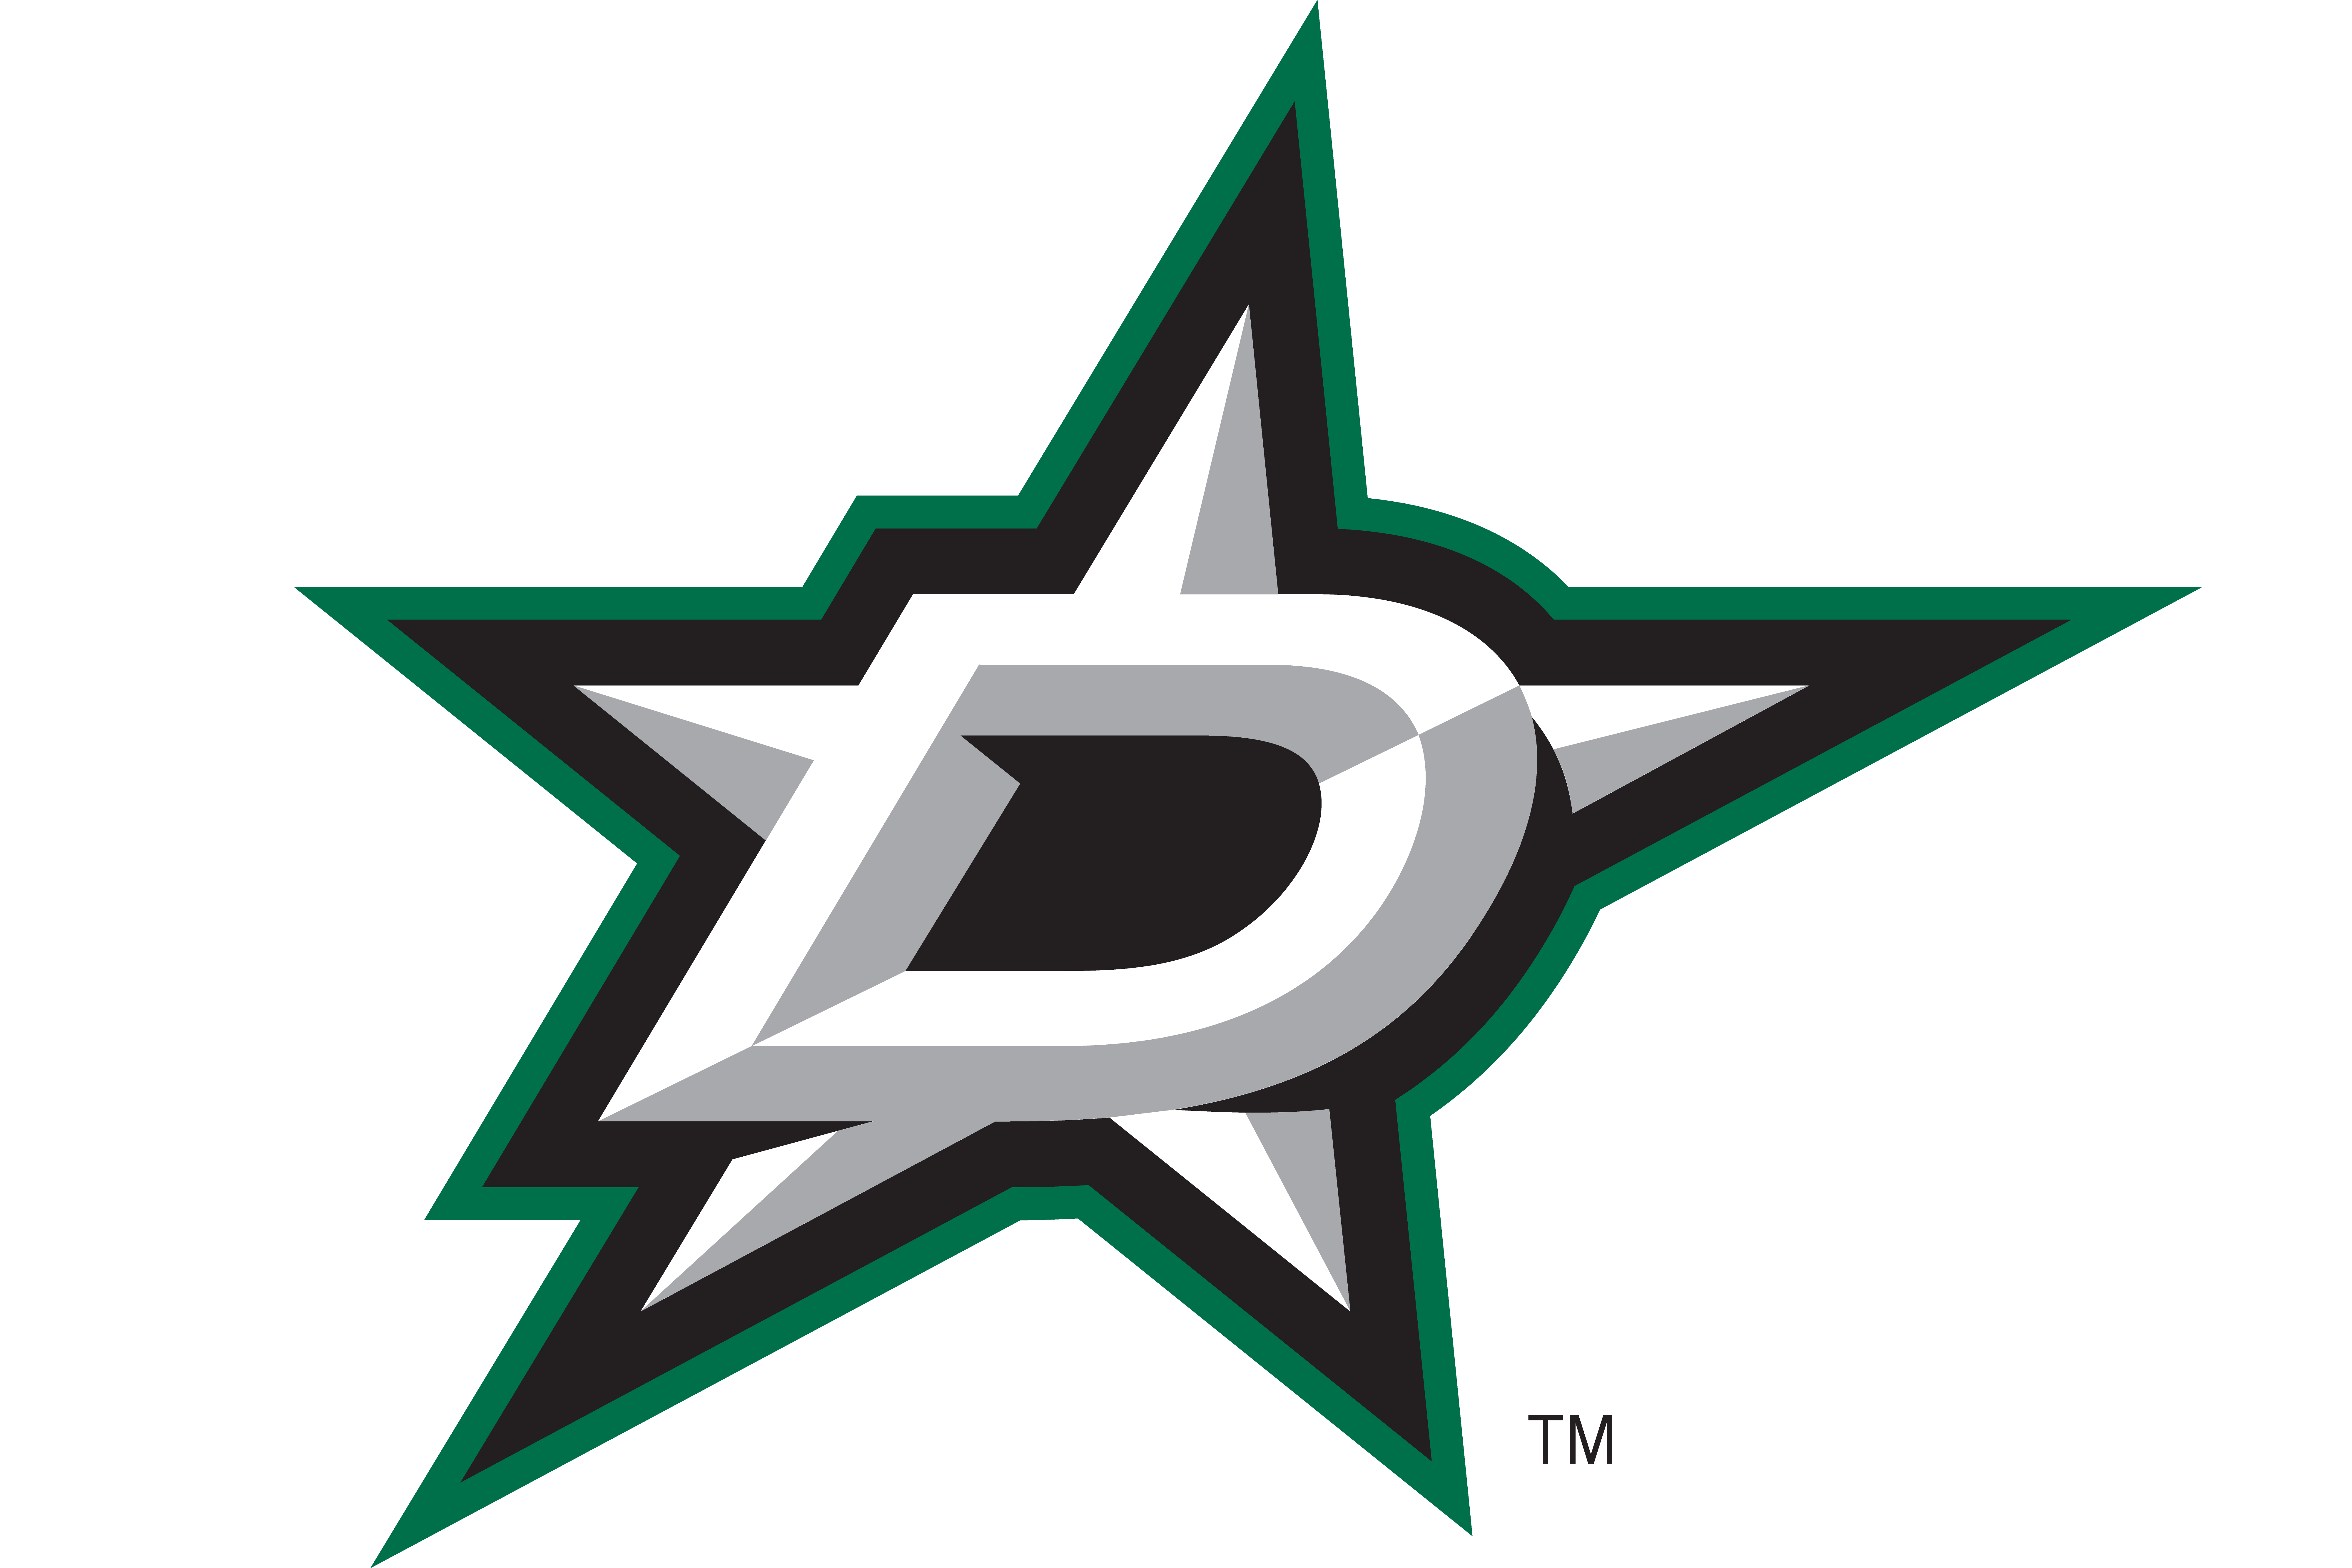 4 Dallas Stars HD Wallpapers | Backgrounds - Wallpaper Abyss